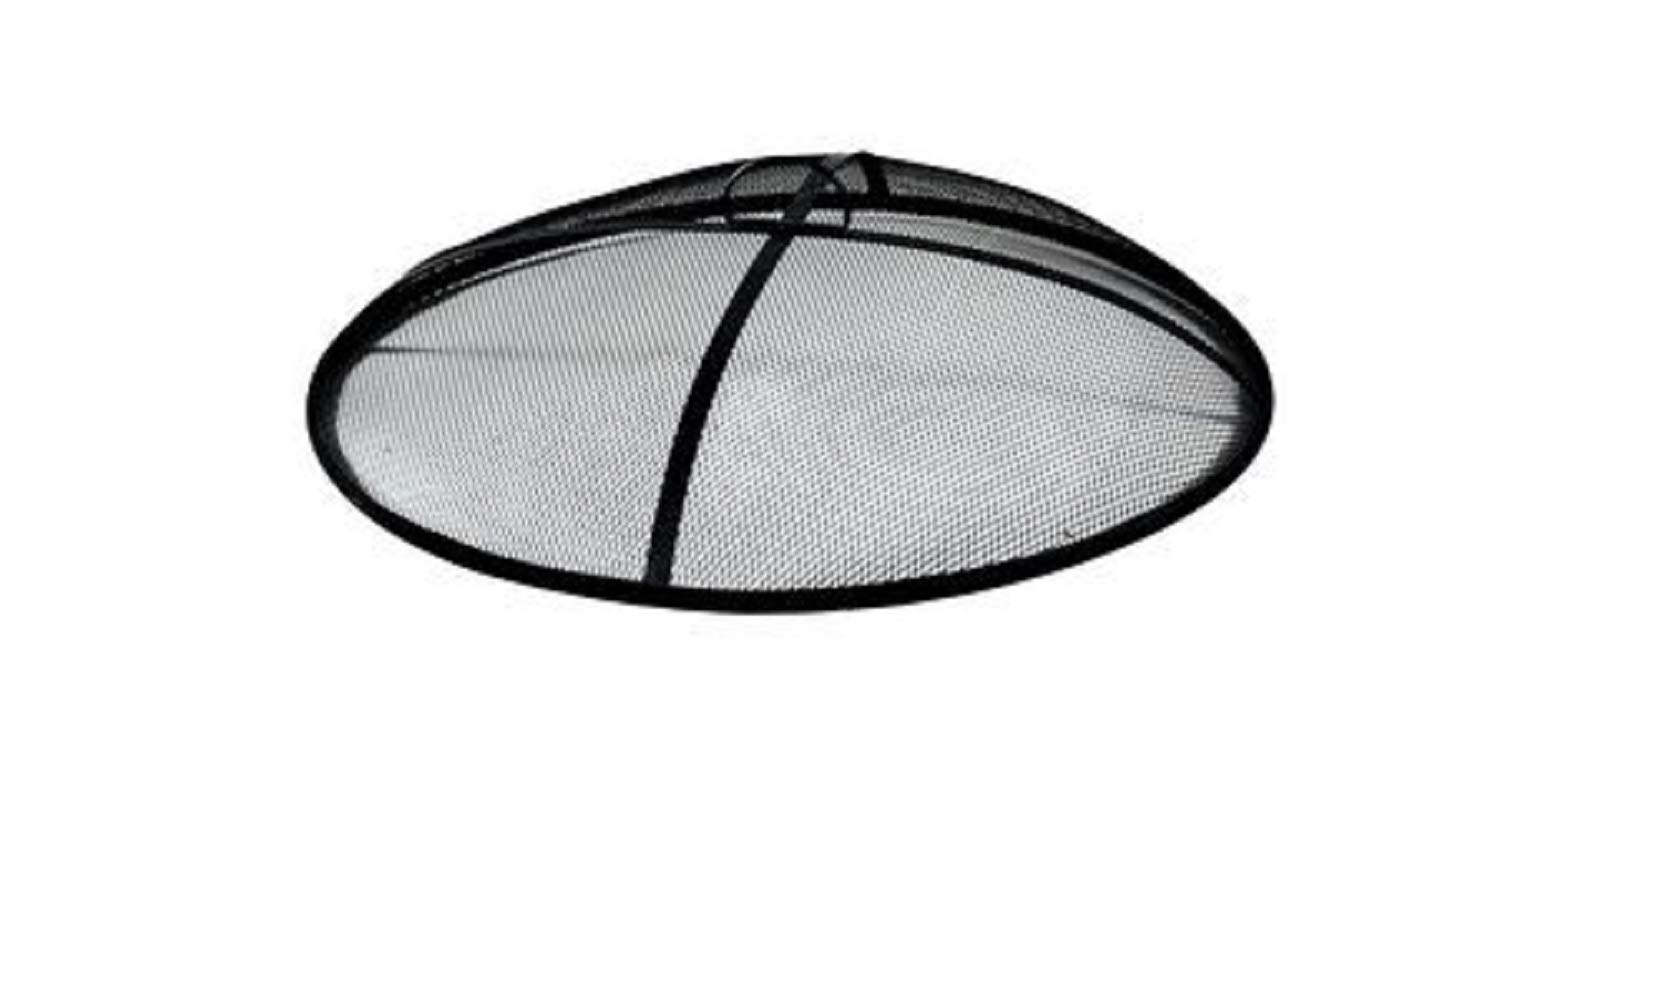 Backyard Creations Round Mesh Fire Pit Spark Screen Cover, 31'' by Backyard Creations